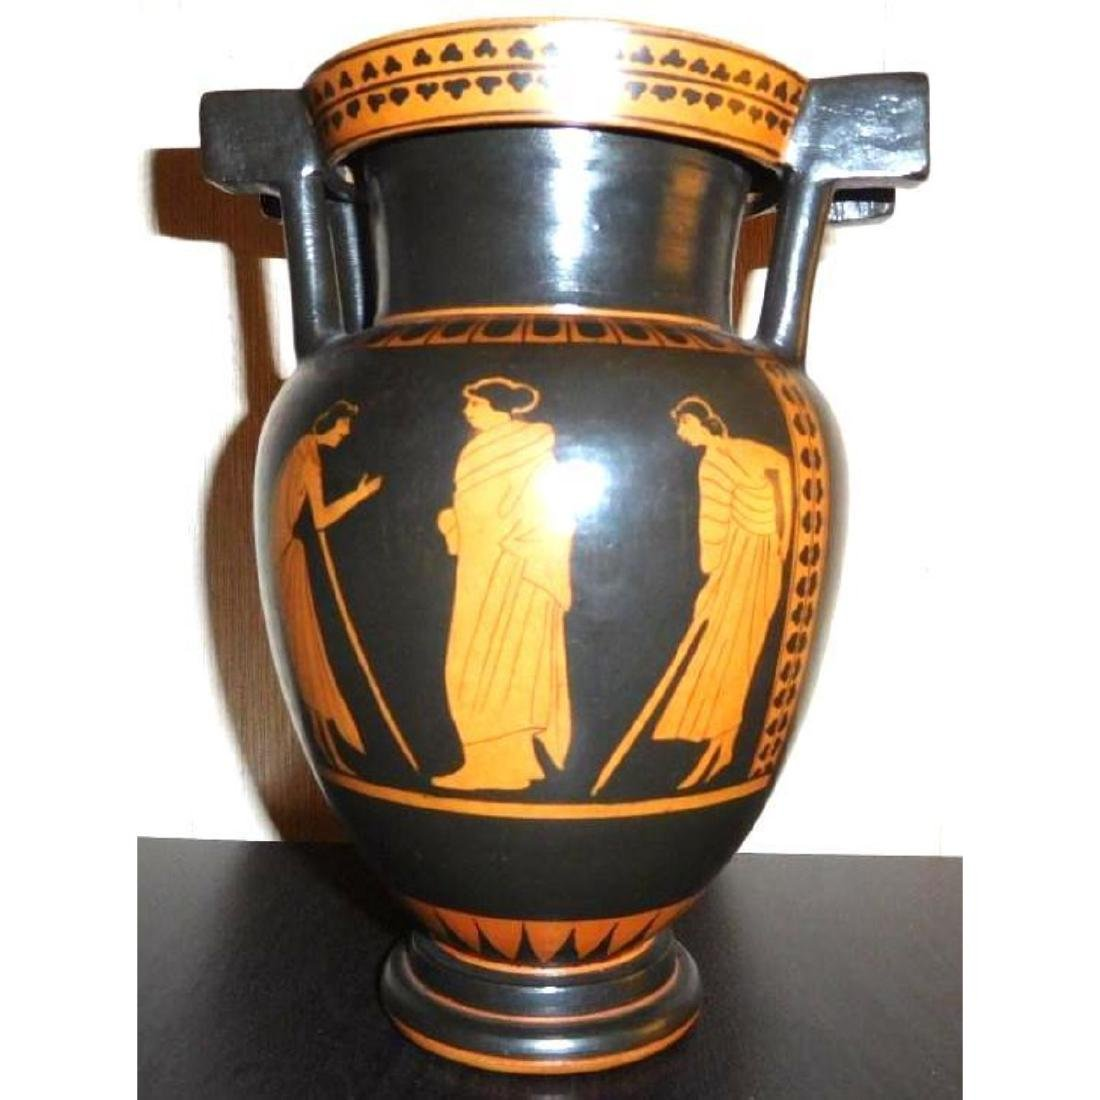 Modern Reproduction of an Ancient Greek Vase